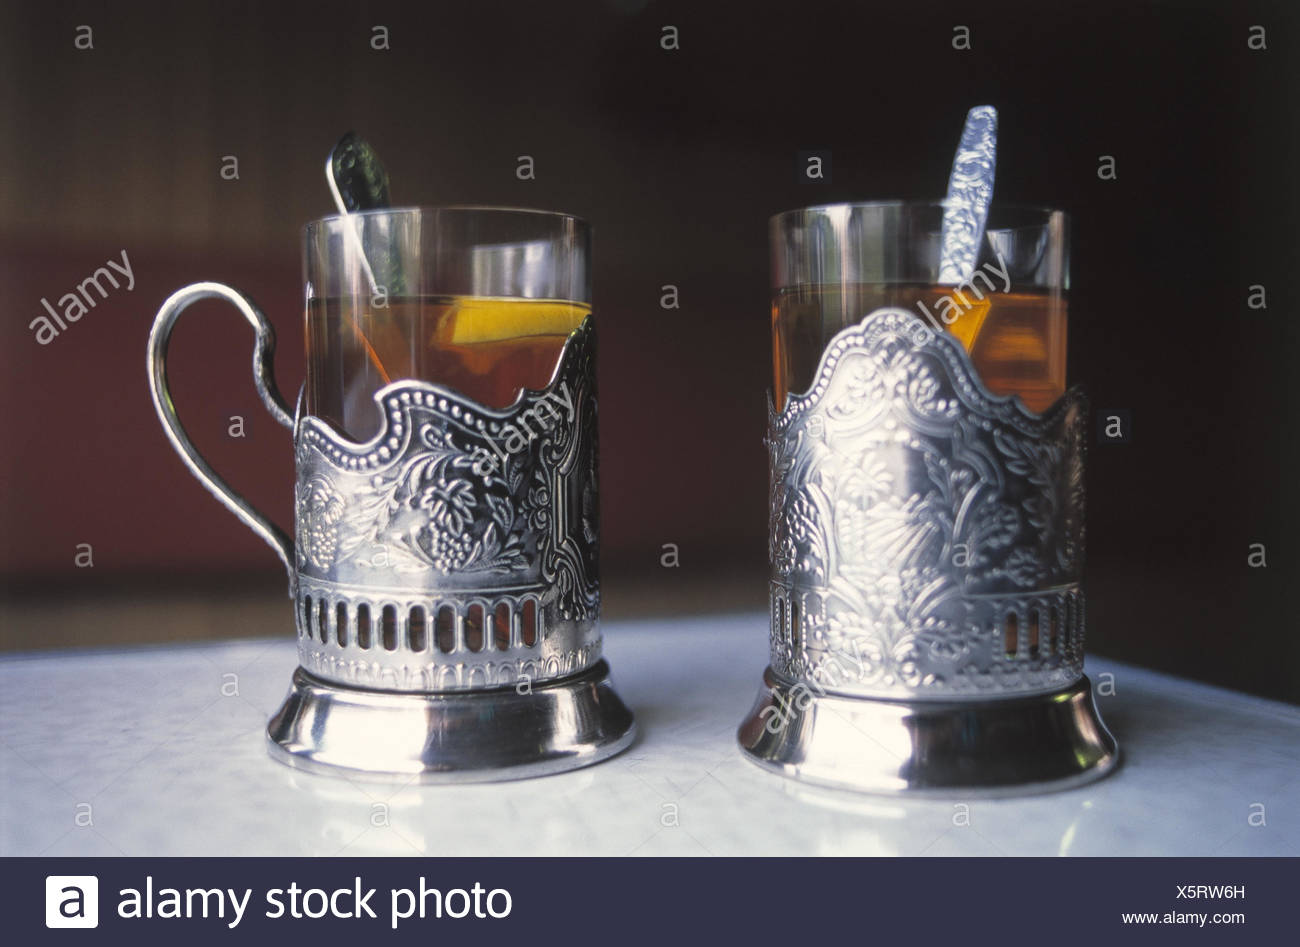 Russia, tea glasses, holders, silver CIS, tea, glasses, drinks, typically, tradition, thirst, dishes, teaspoon, spoon, anti-alcoholic, alcohol-free, object photography - Stock Image